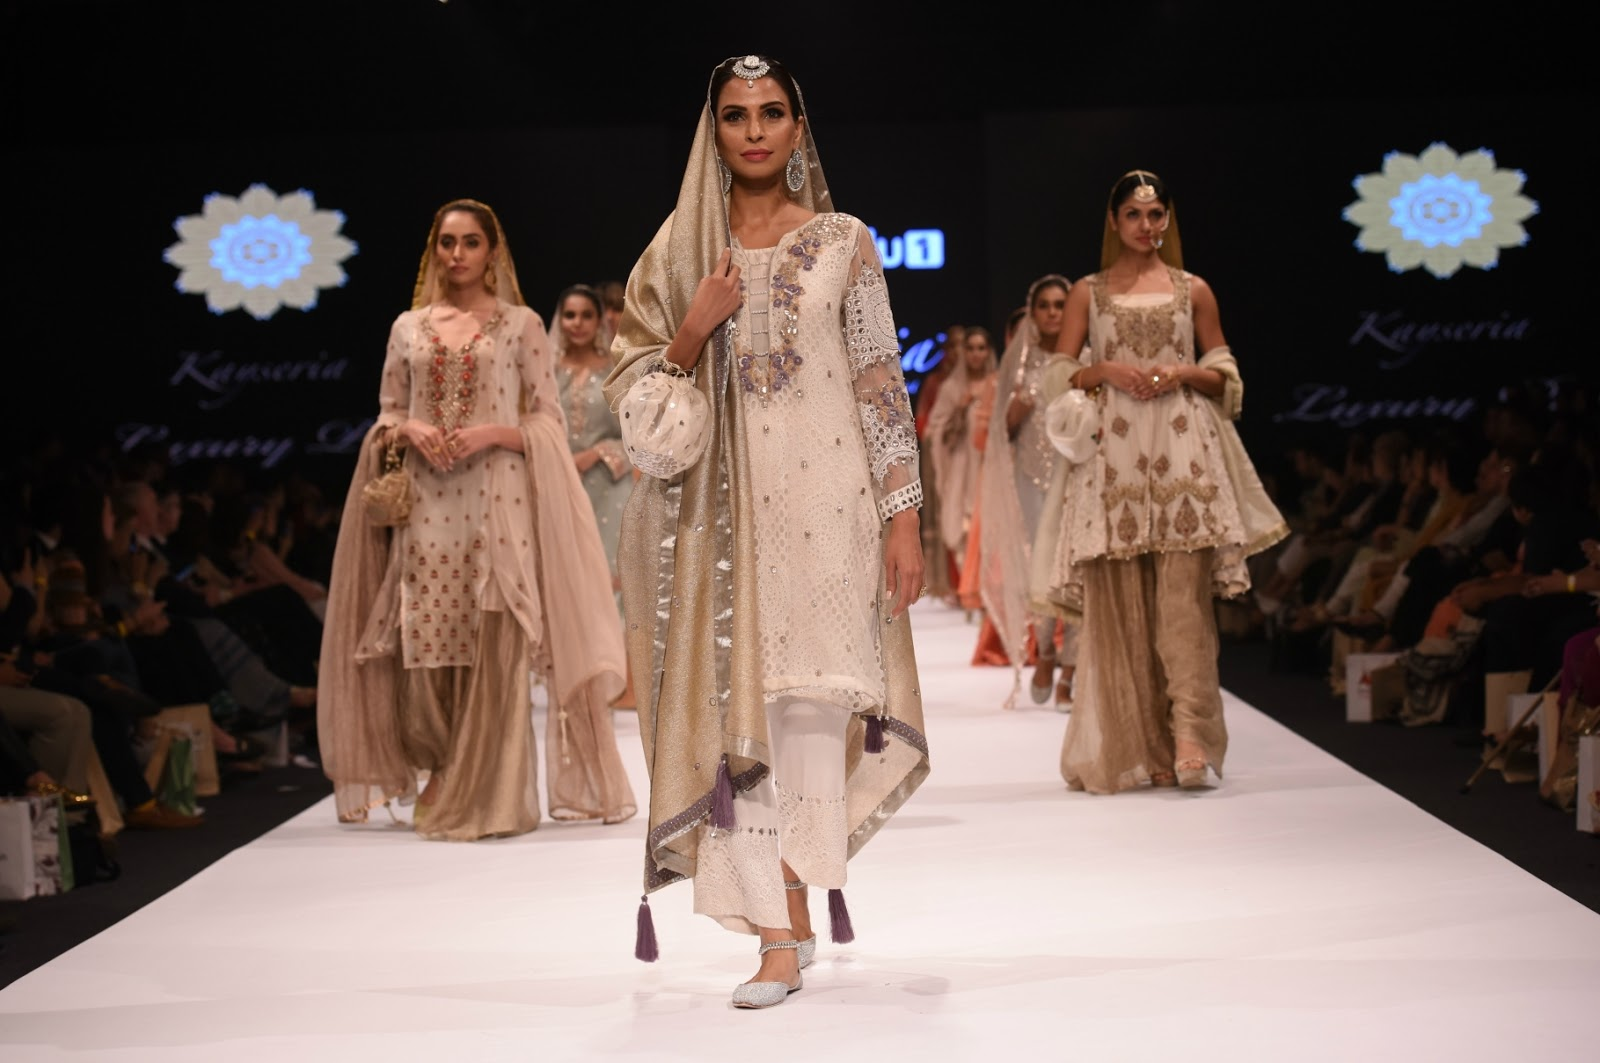 ... fashion shows pakistani village girl launches vc funded fashion